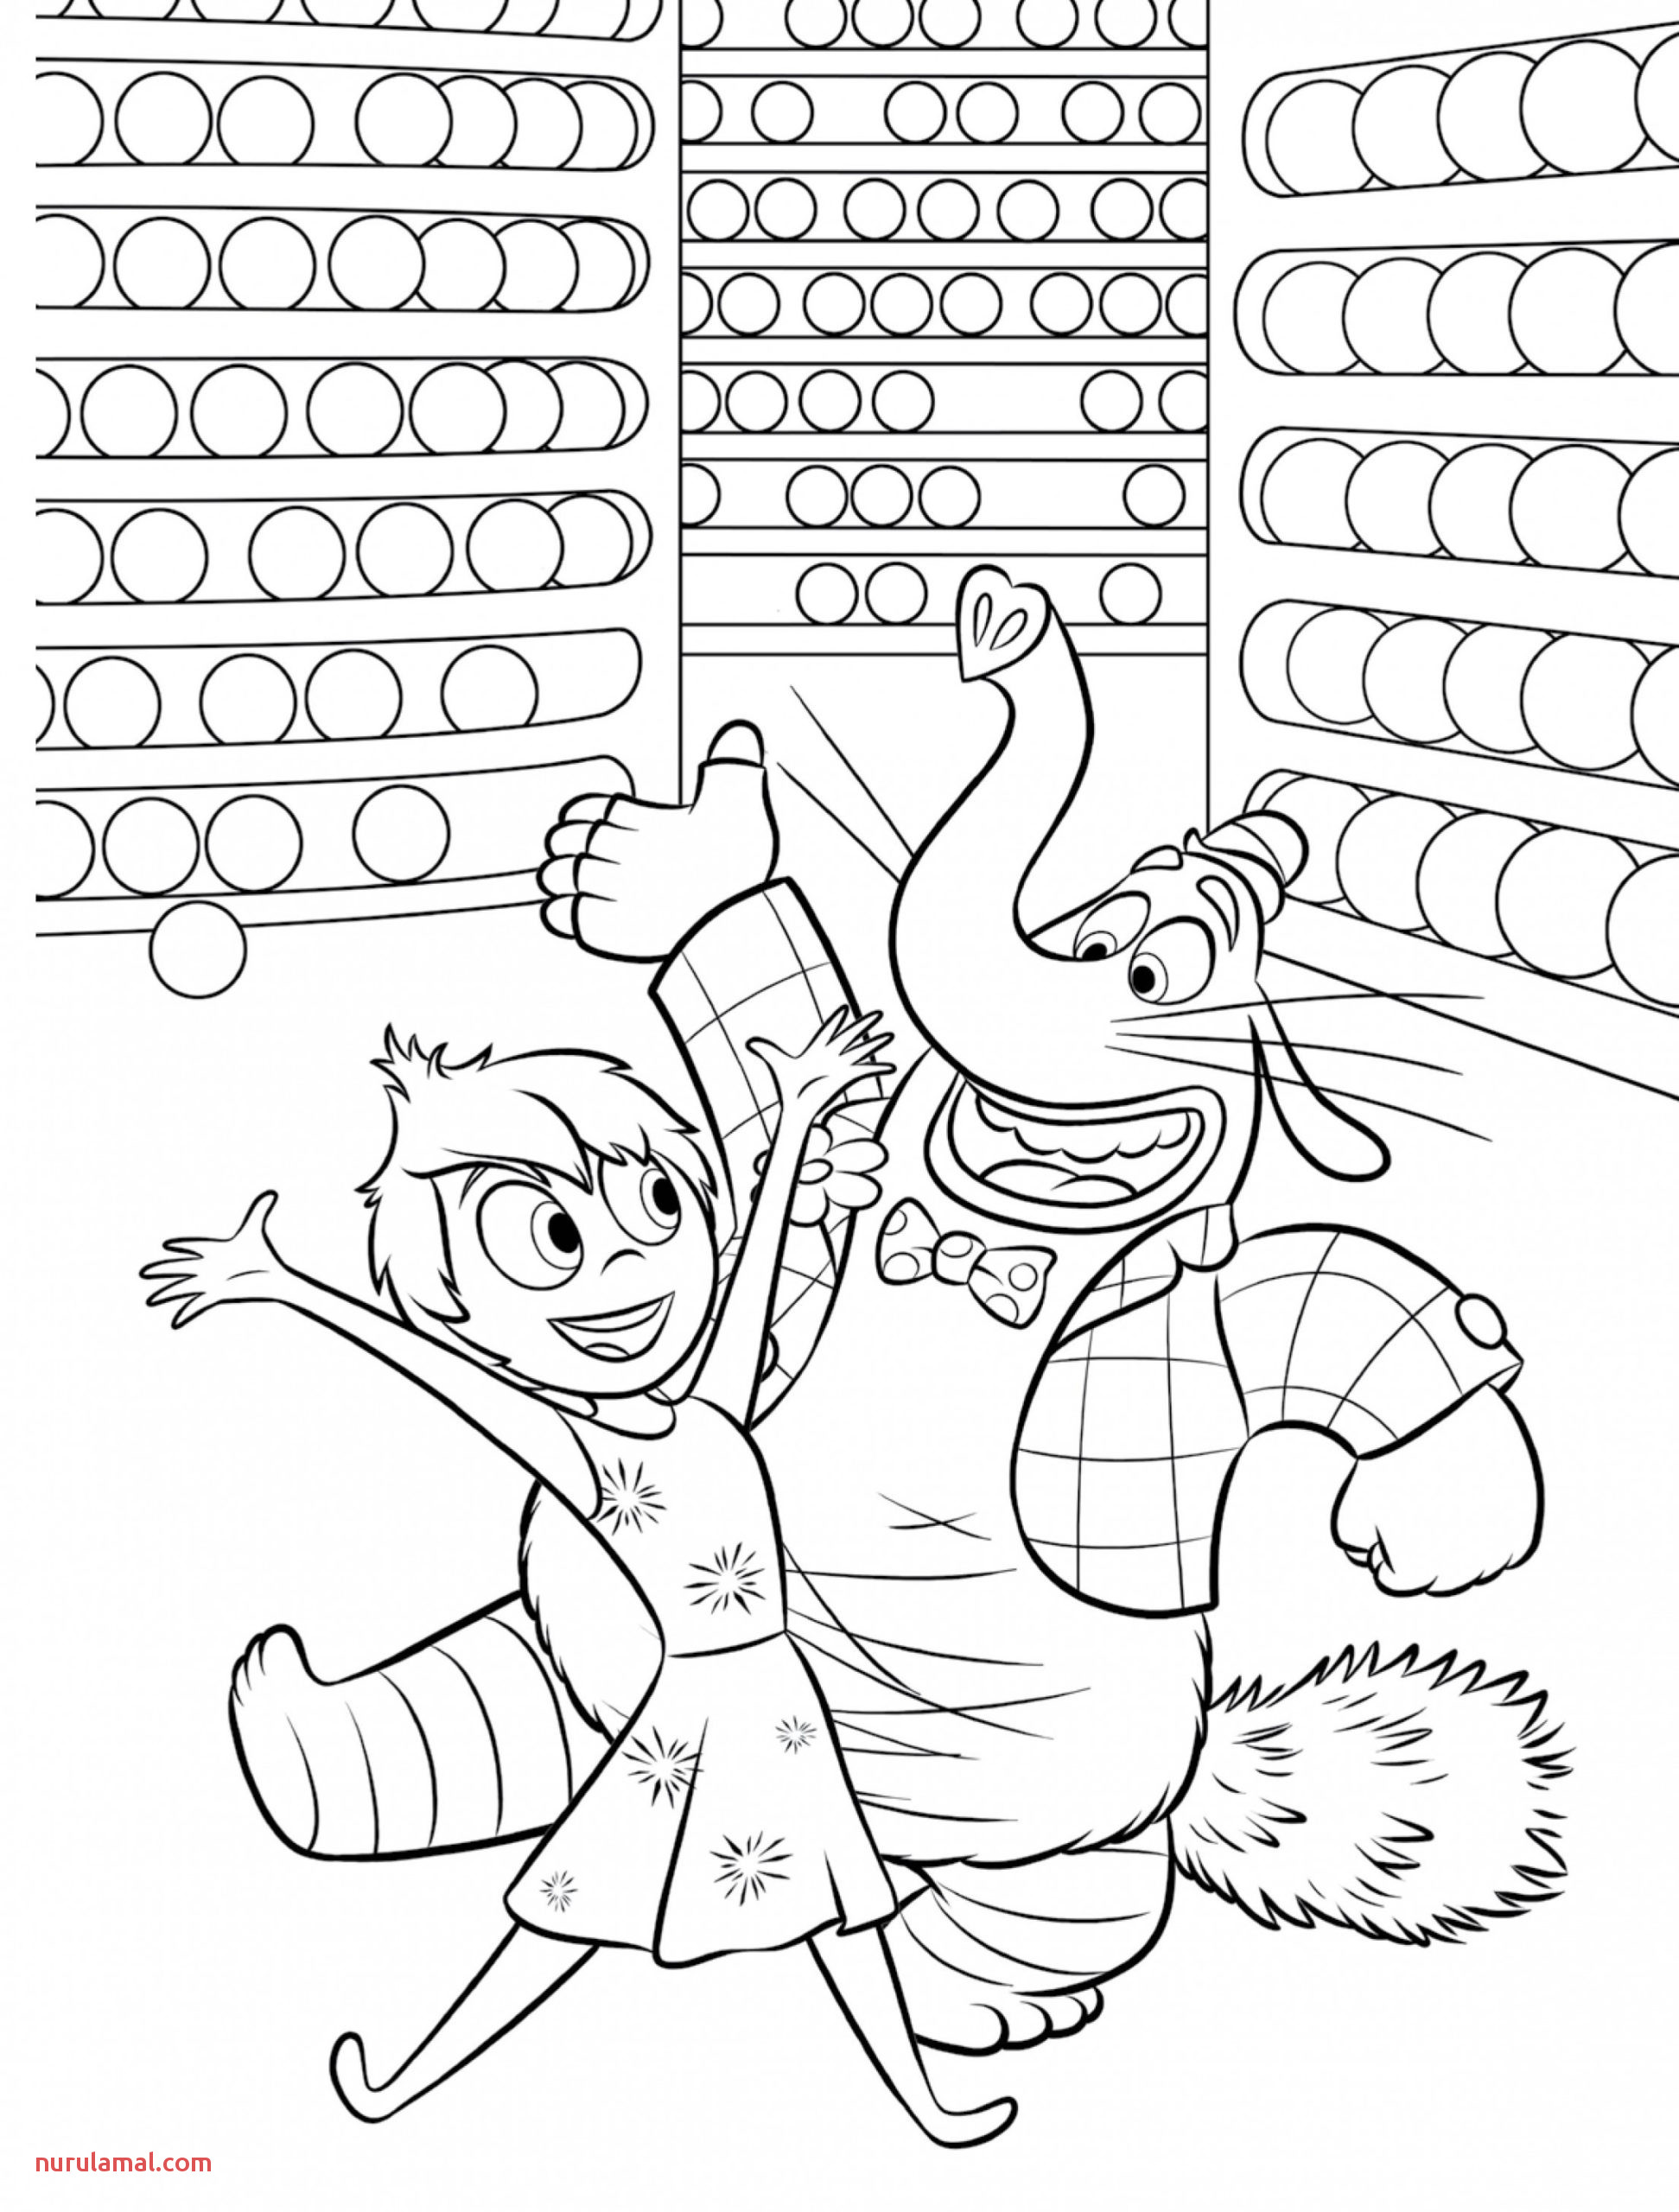 Coloring Pages Spring Coloring Pages for Preschoolers